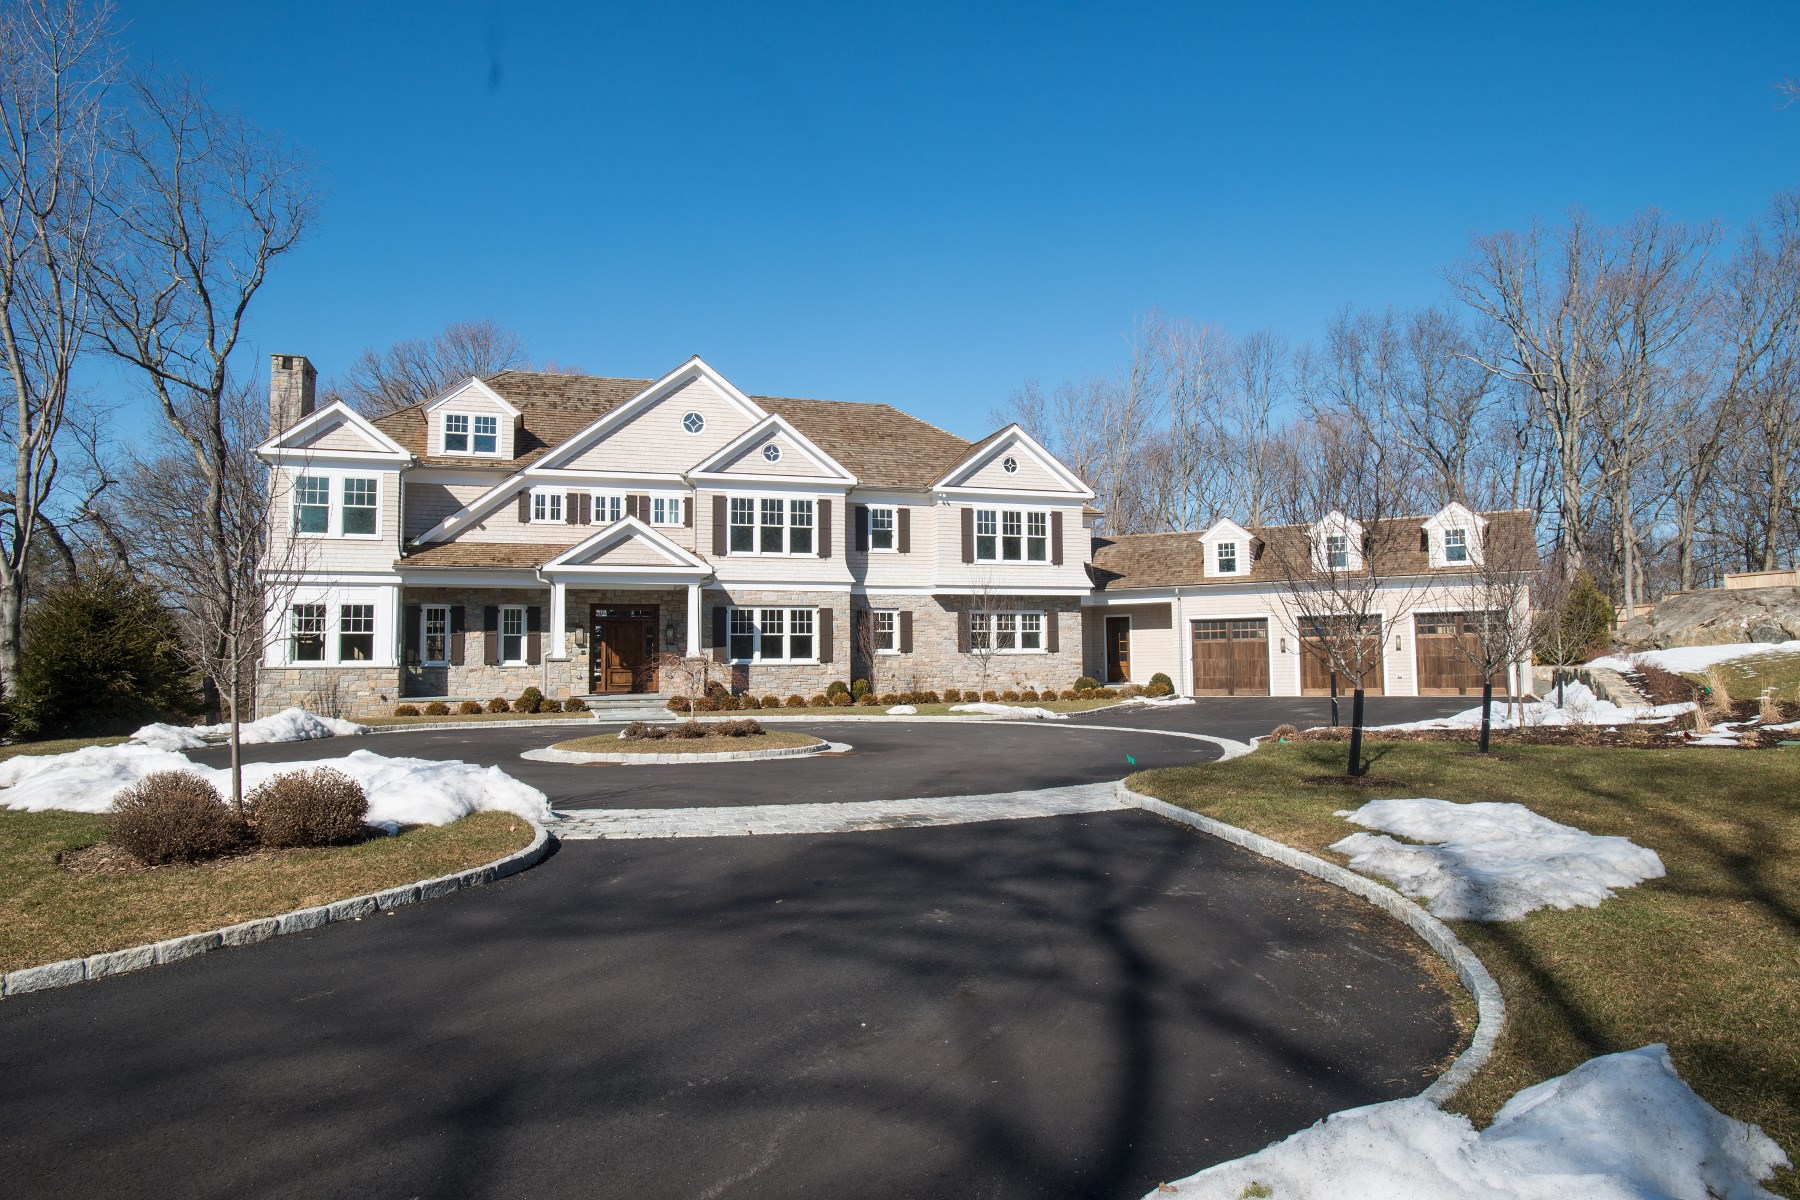 Single Family Home for Sale at A New Classic for Modern Living 289 Stanwich Road Greenwich, Connecticut 06830 United States